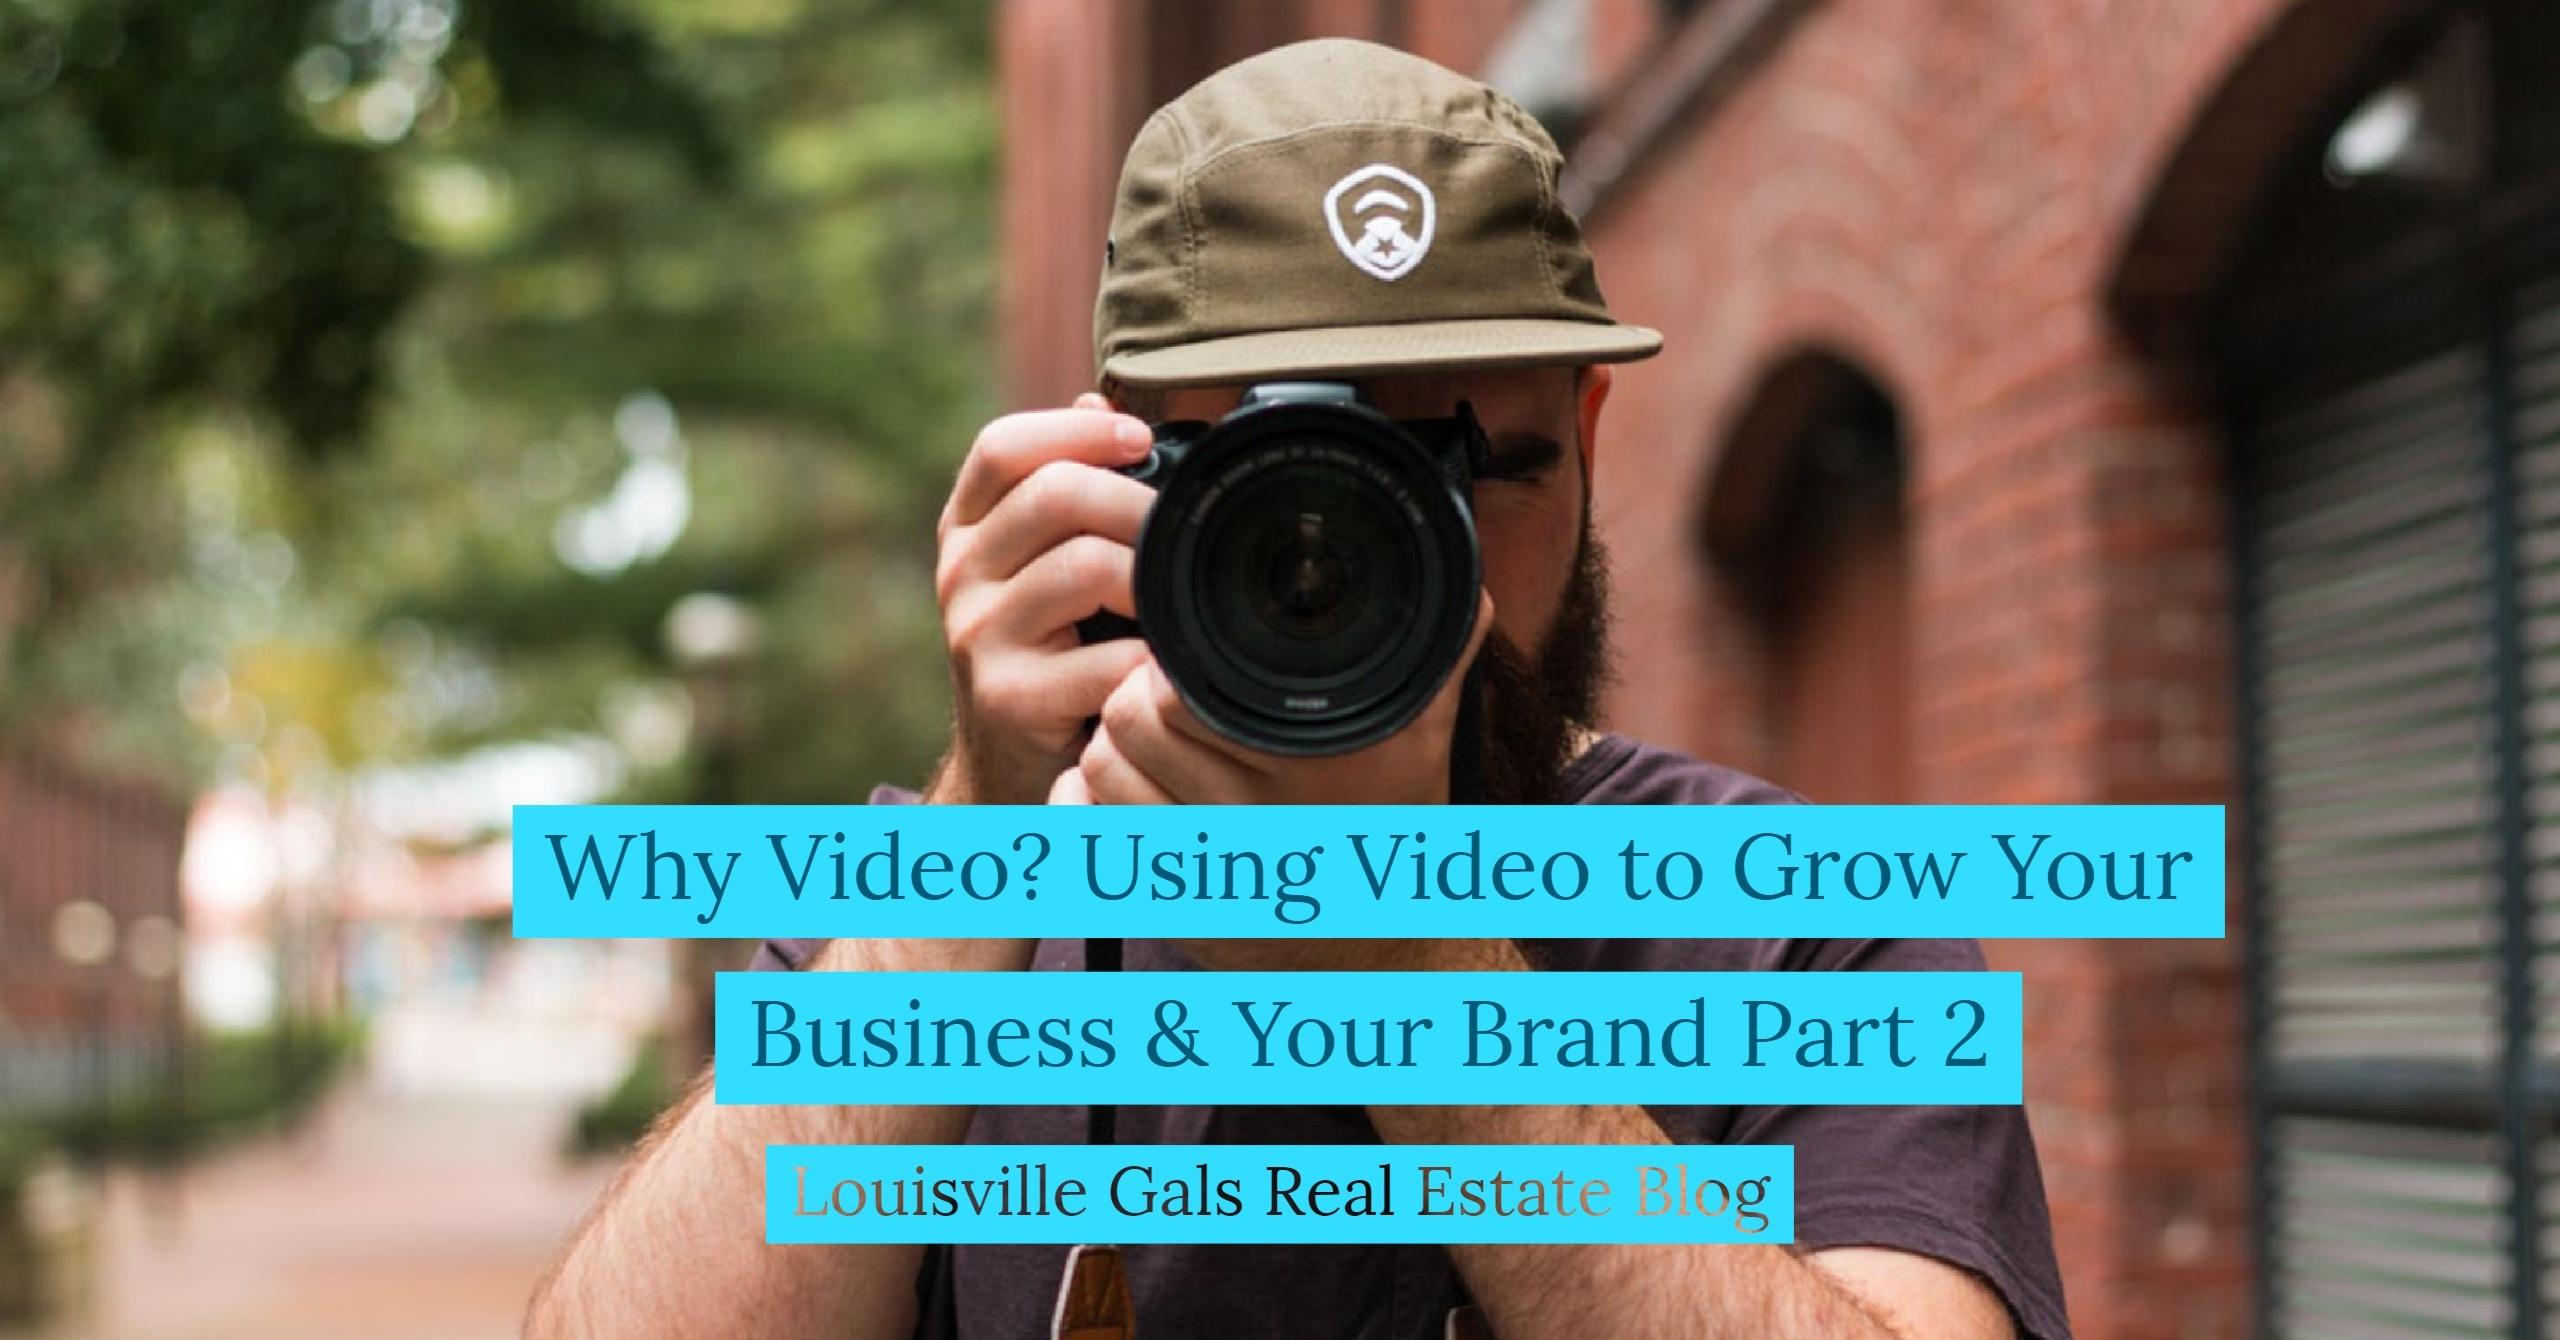 Why Video? Using Video to Grow Your Business, Your Brand and Your Bottom Line - Part 2